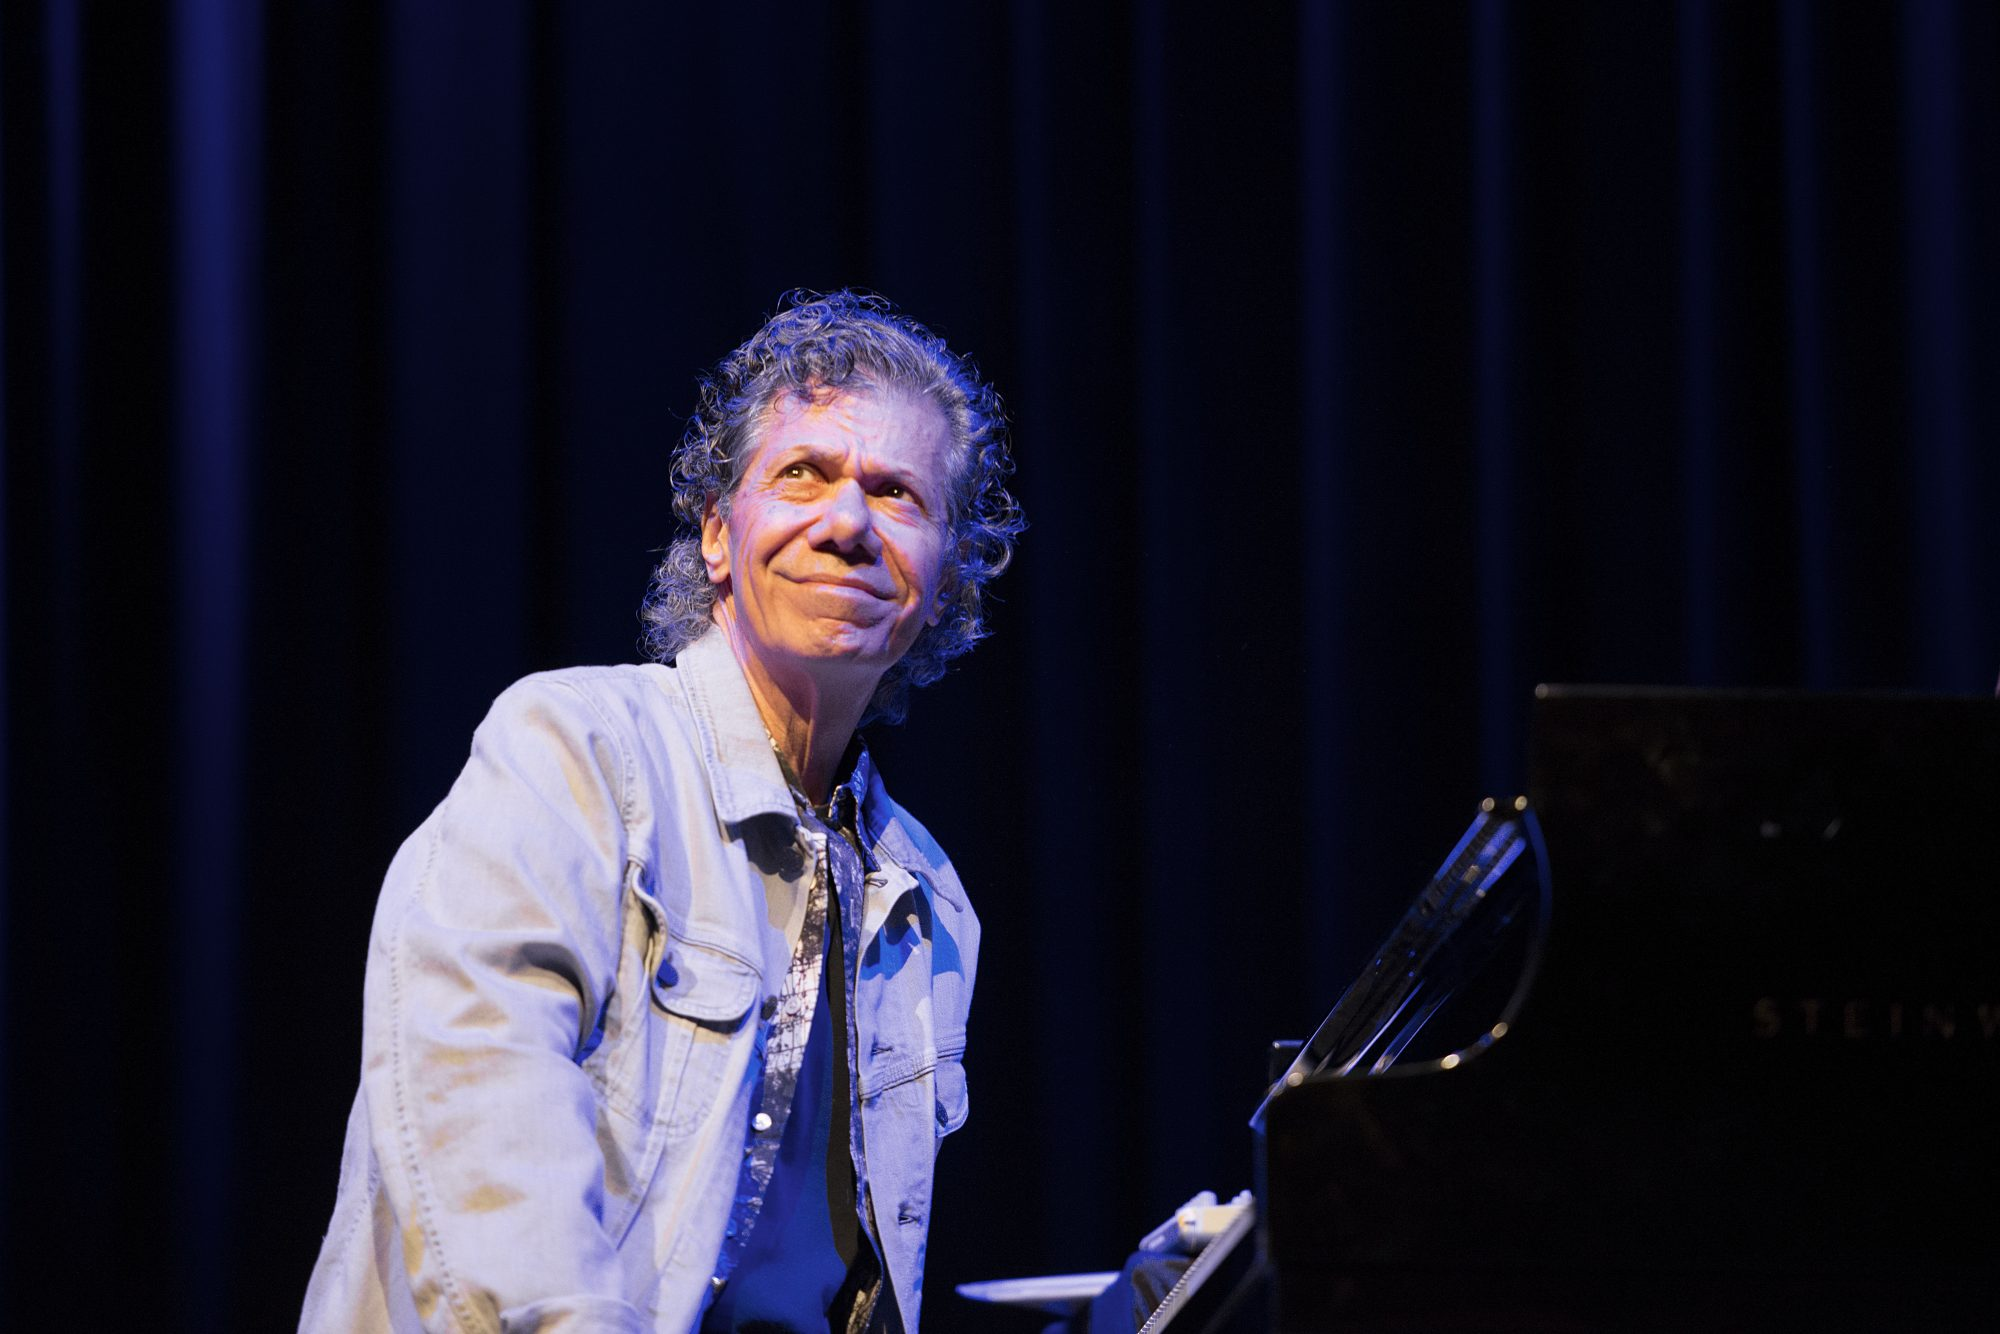 Chick Corea performs on stage at Halic Congress Cente